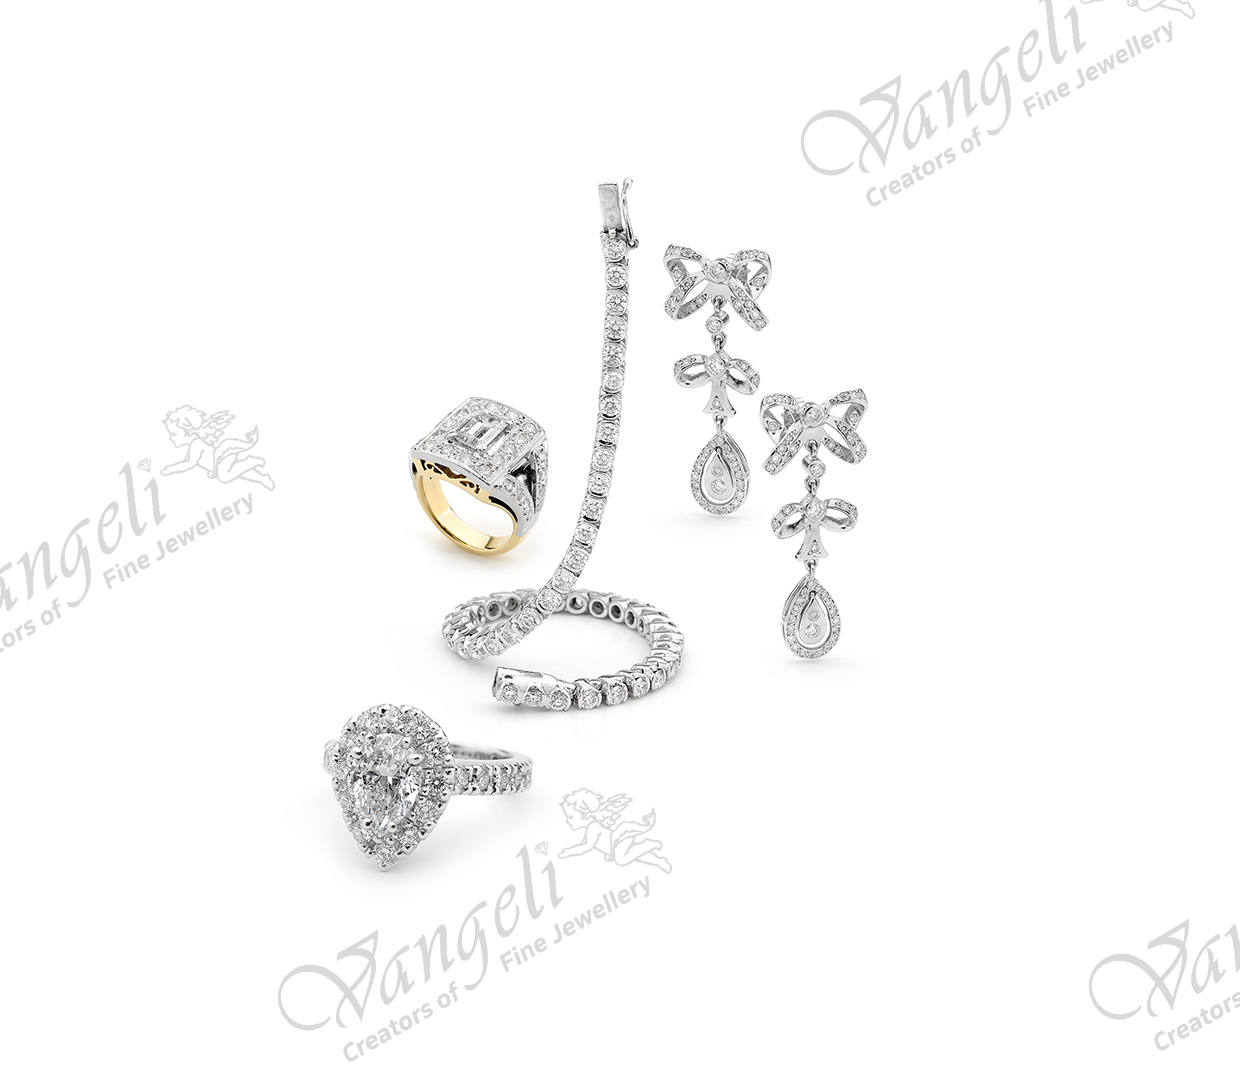 18ct gold and platinum hand-made jewellery